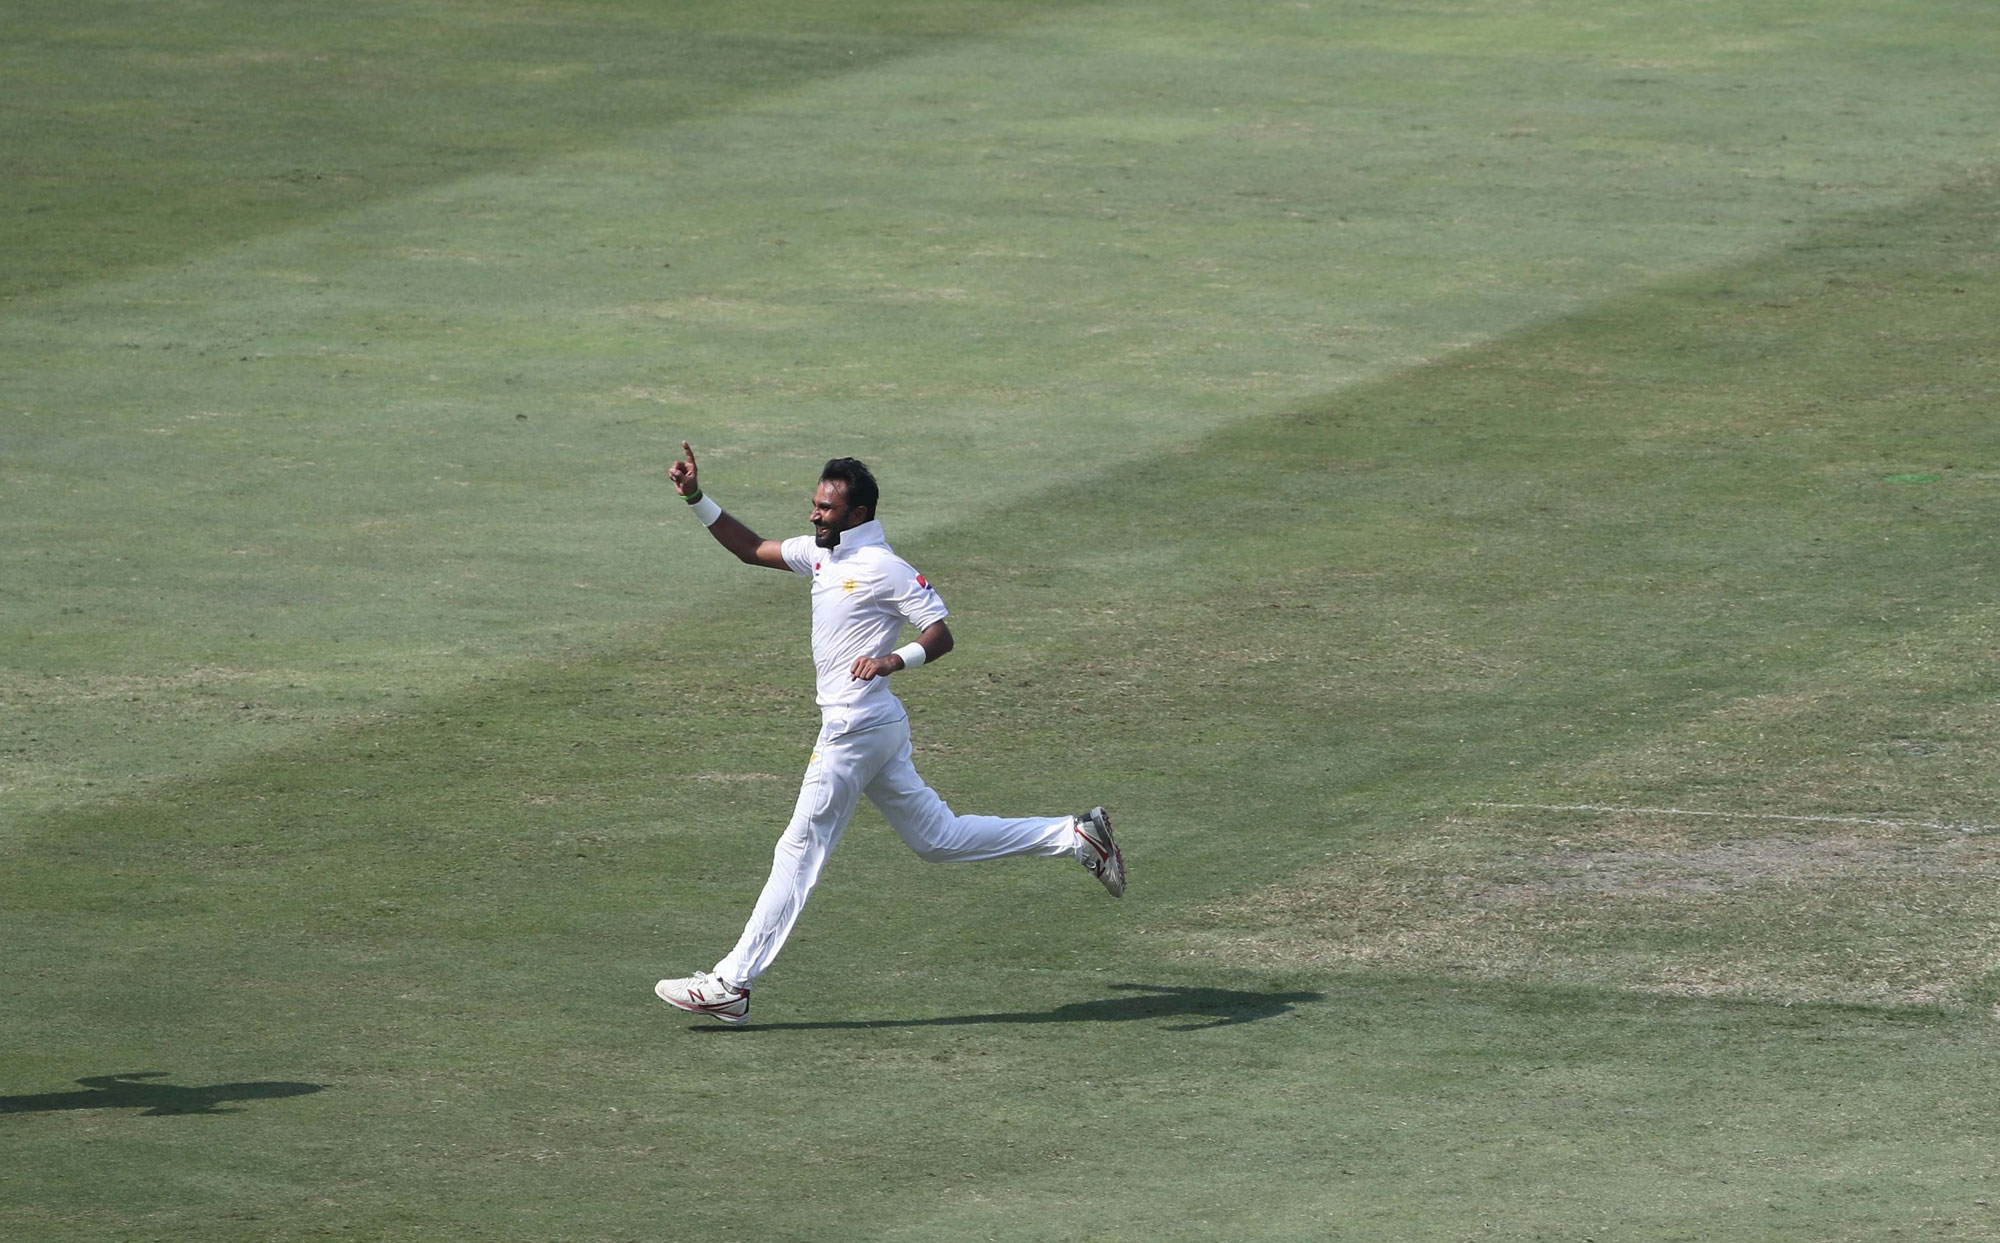 1.	Pakistan cricketer Bilal Asif celebrates after taking the wicket of  Australian batsman Usman Khawaja during the third day of play of the first Test cricket match in the series between Australia and Pakistan at the Dubai International Stadium in Dubai